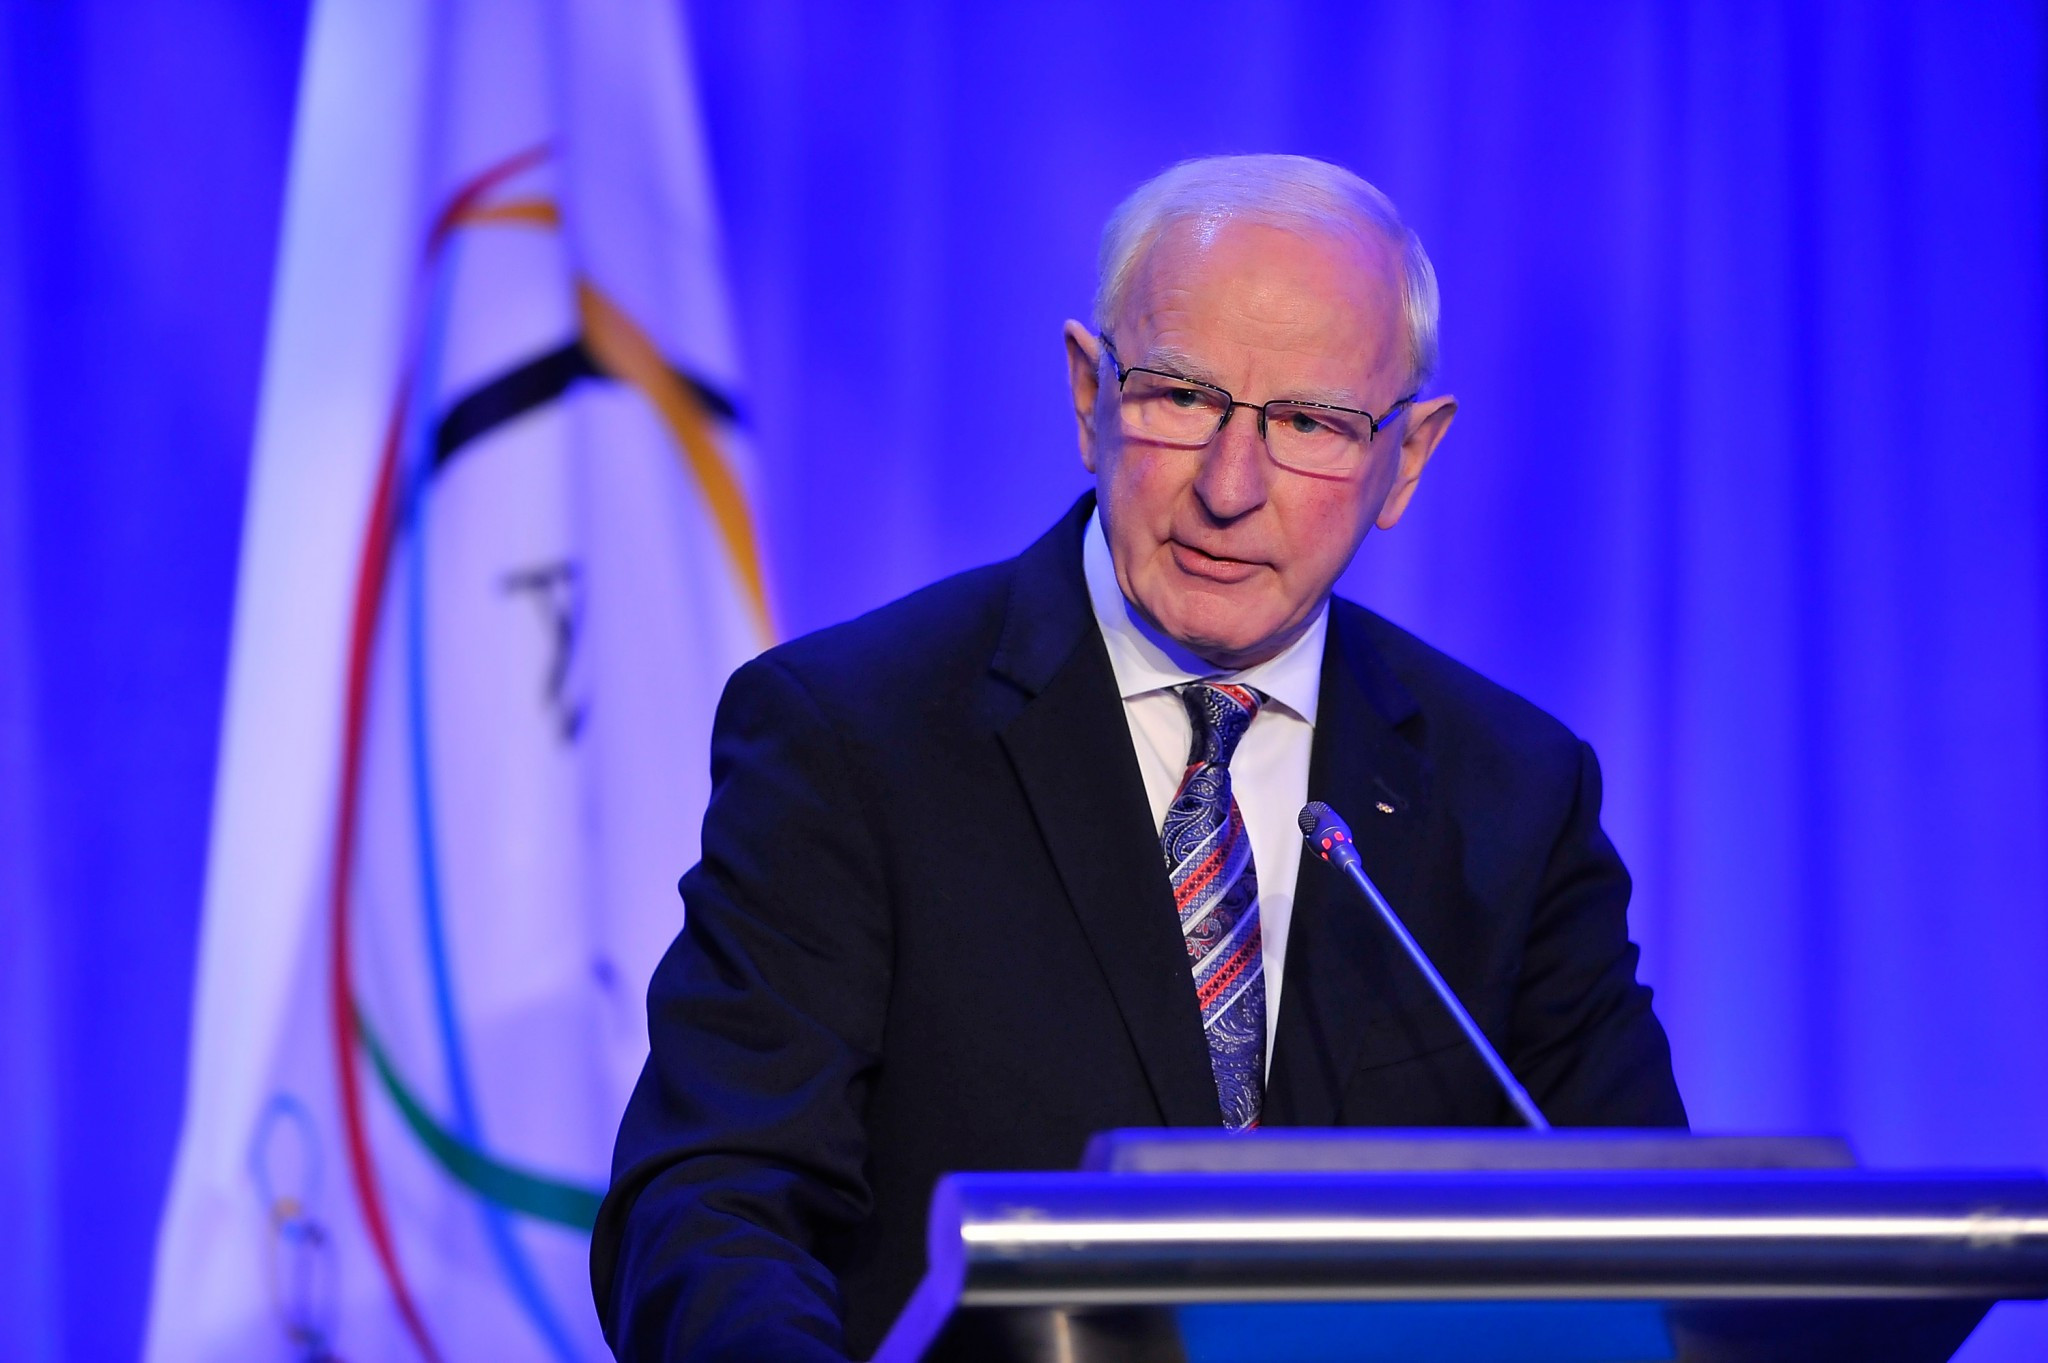 Patrick Hickey has resigned from the IOC Executive Board and could be replaced by Fiji's Robin Mitchell as representative of the Association of National Olympic Committees ©ANOC